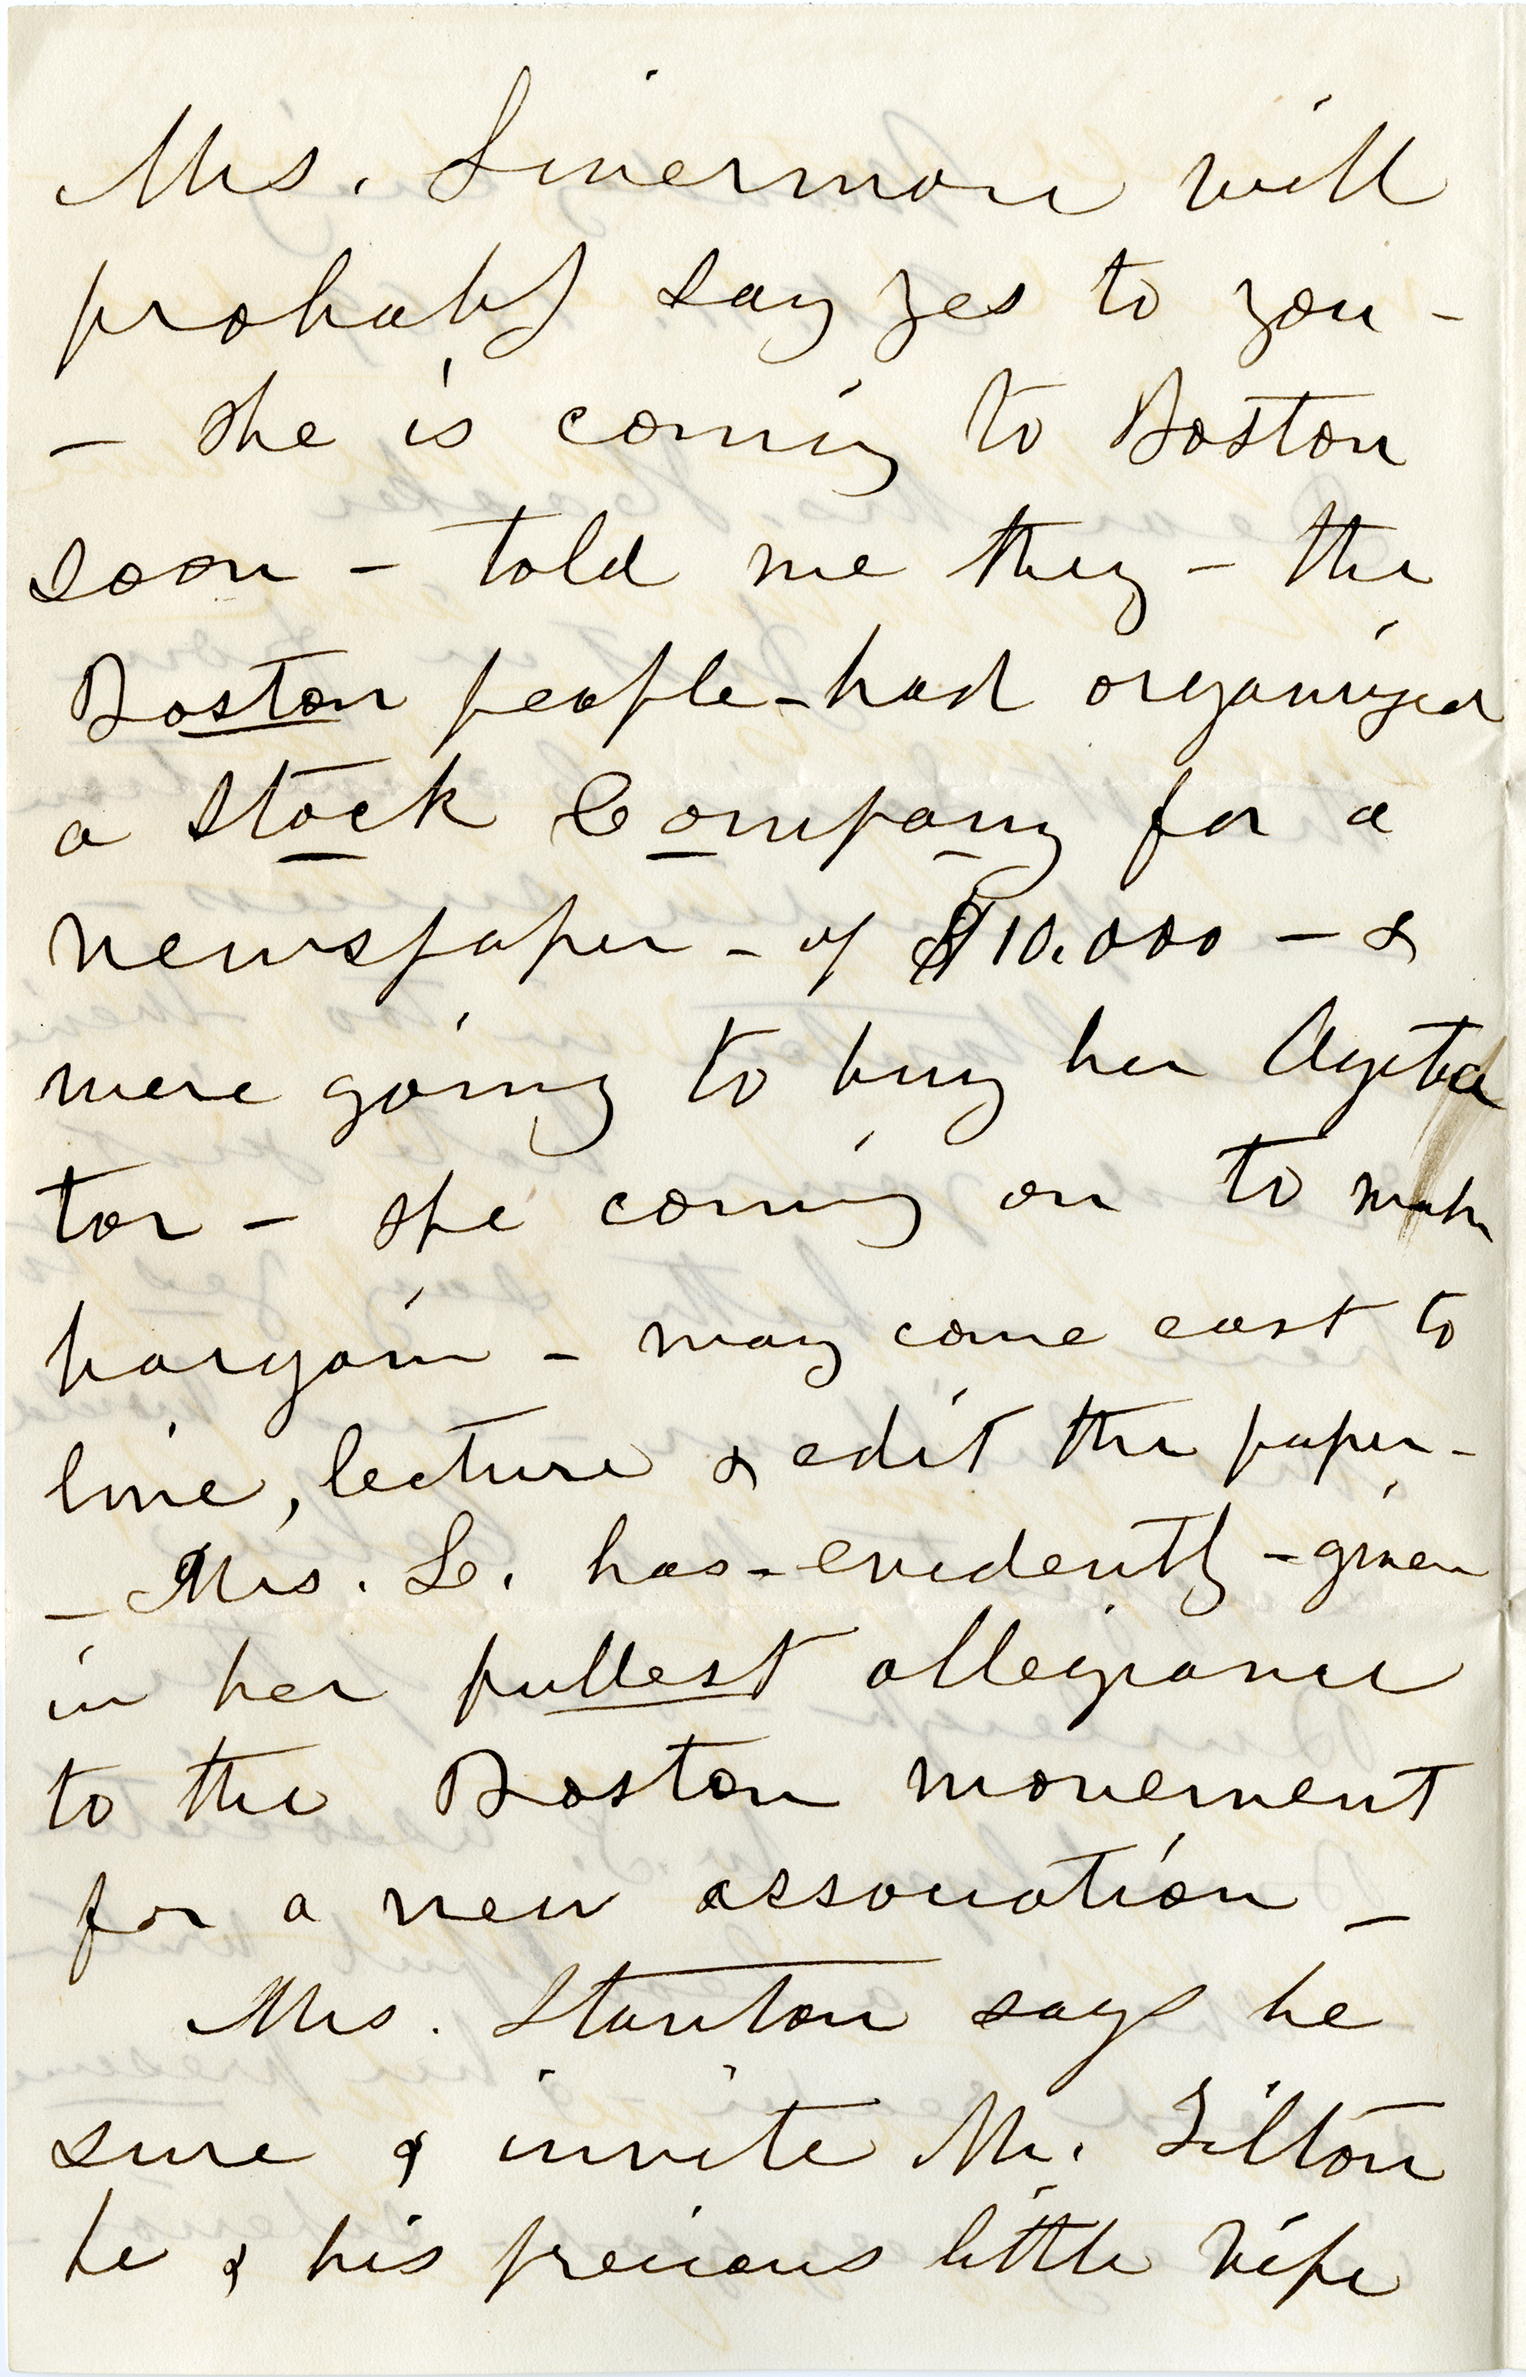 The 2nd page of a letter from Susan B. Anthony to Isabella Beecher Hooker